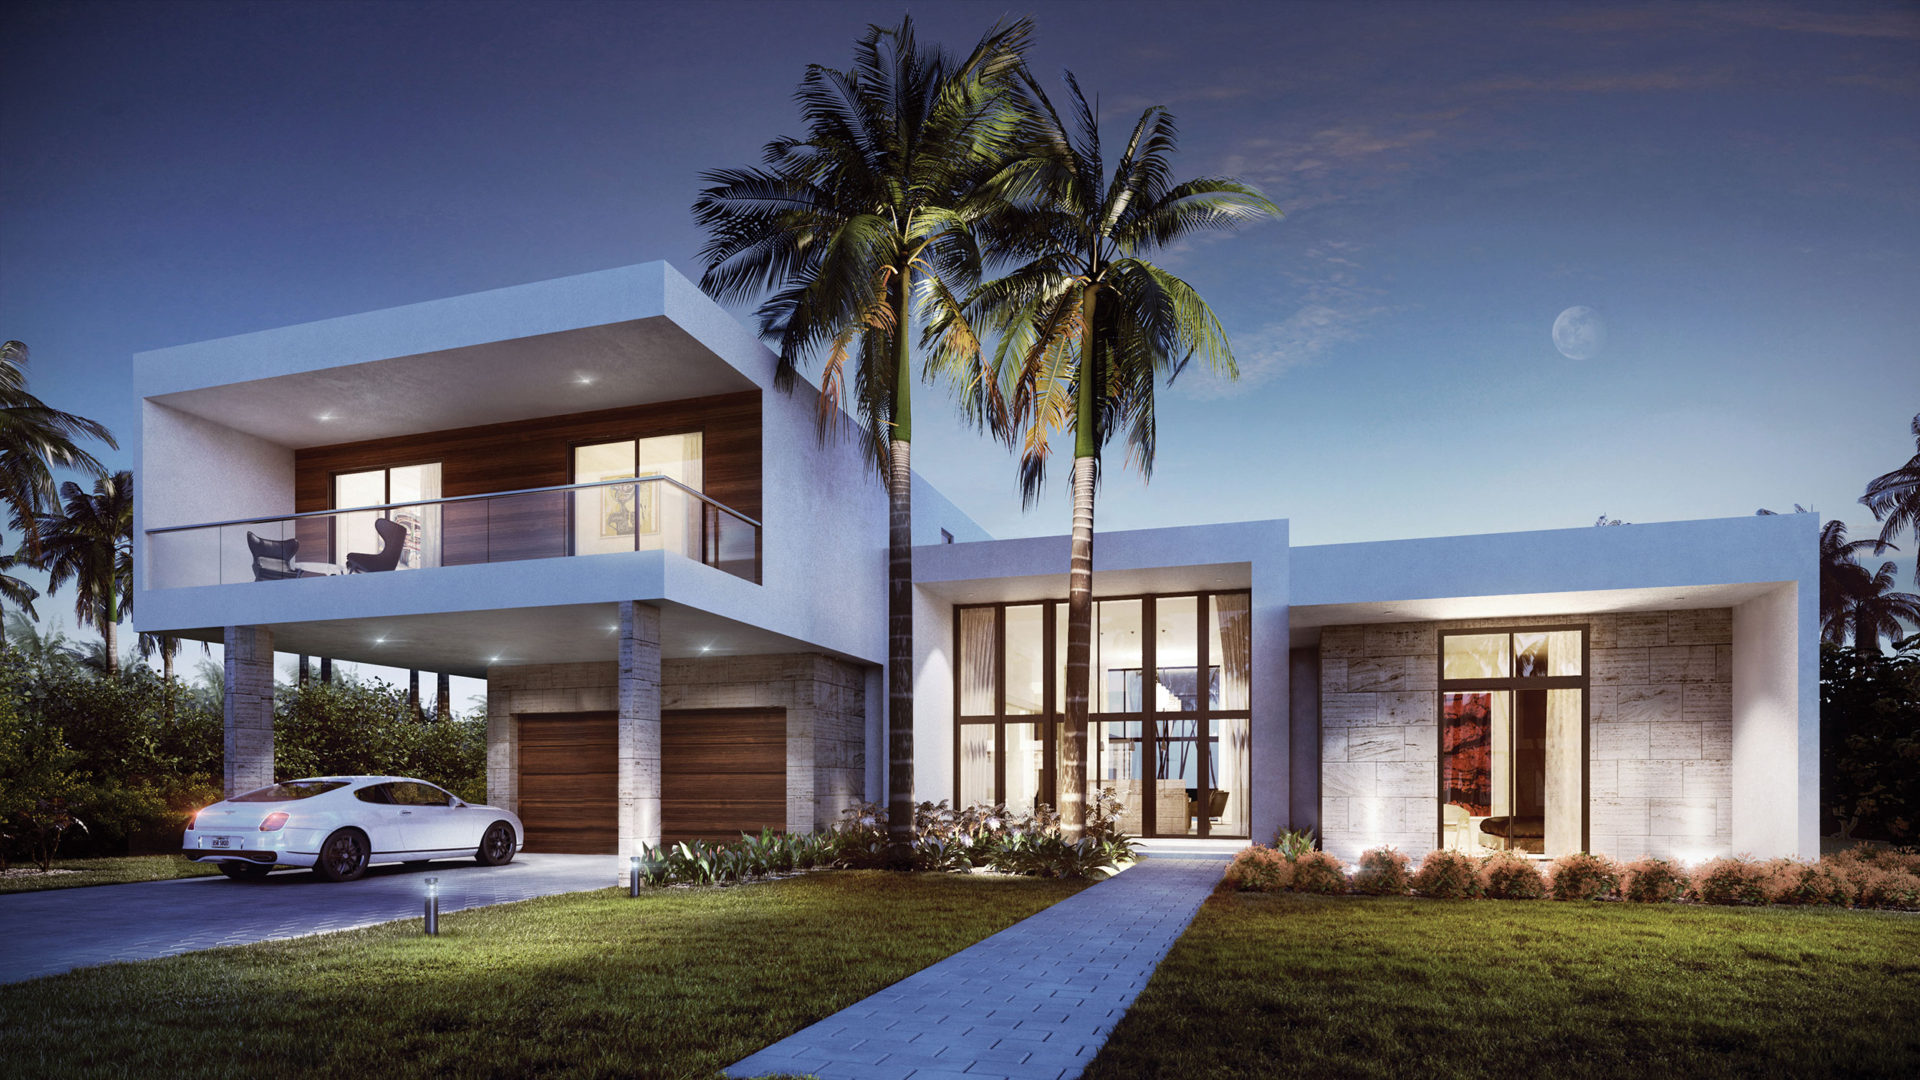 Brilliant Boca Raton Luxury Real Estate Boca Raton Homes Condos Download Free Architecture Designs Viewormadebymaigaardcom